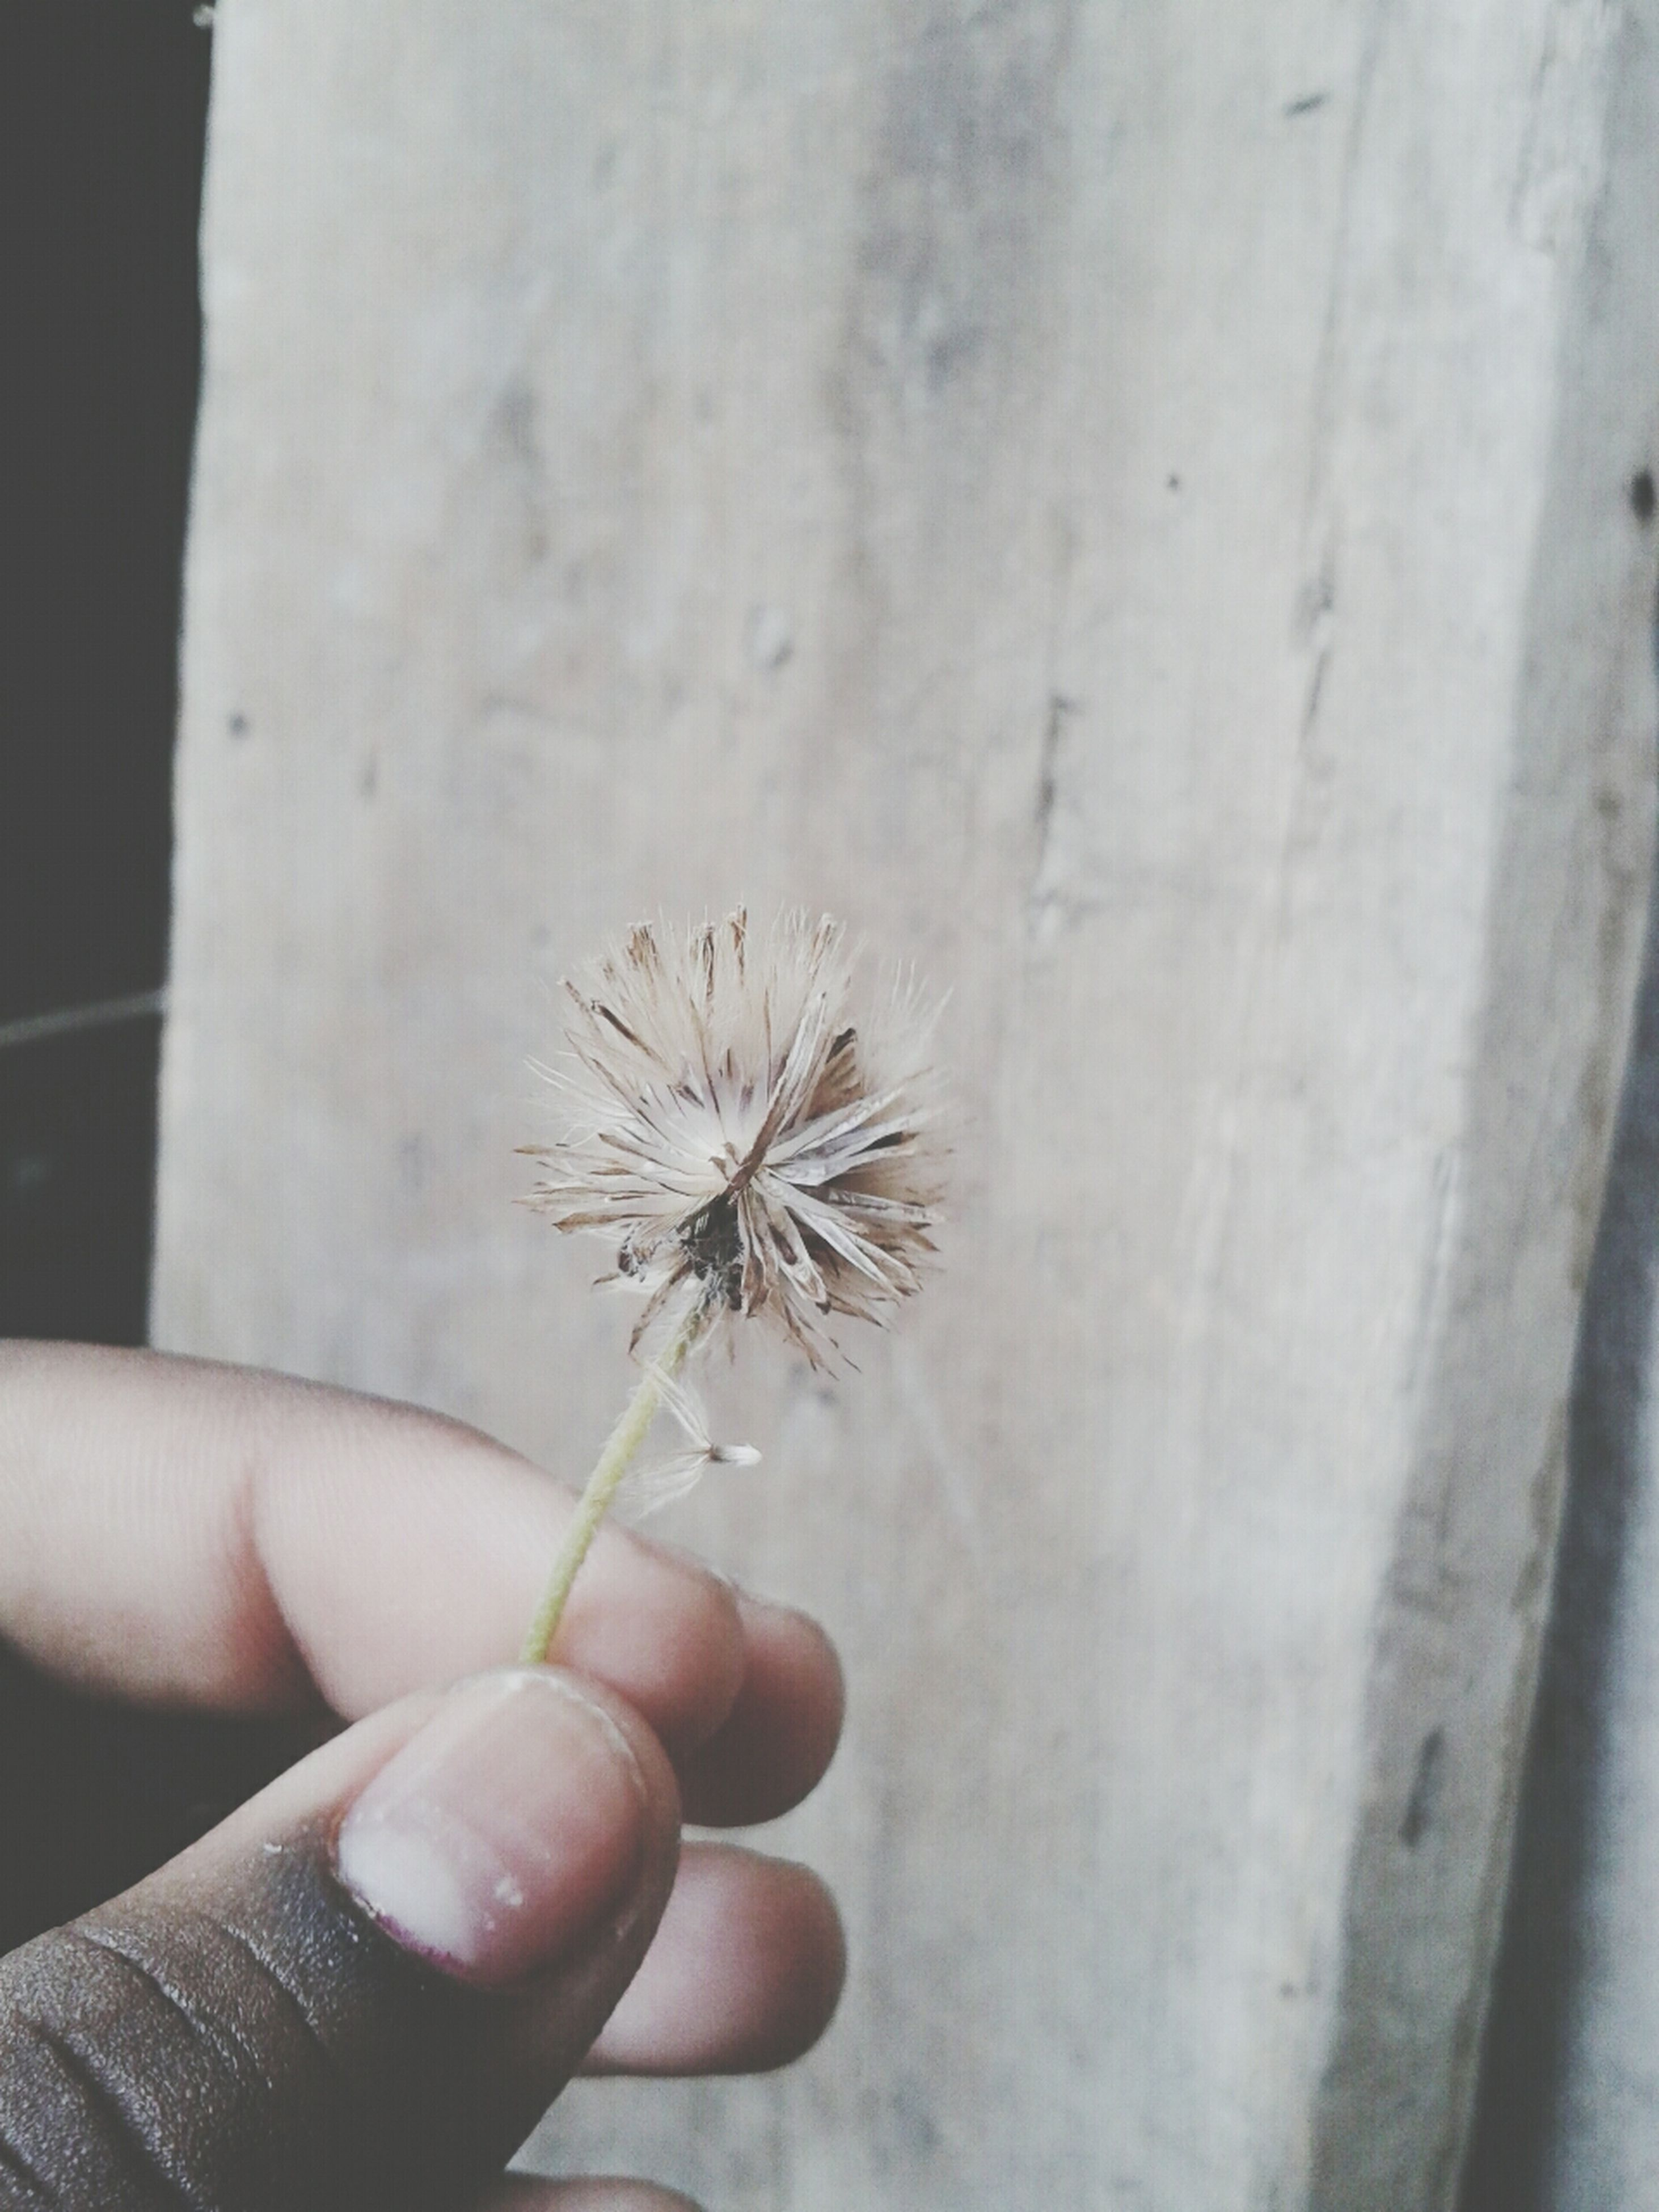 person, holding, part of, cropped, human finger, unrecognizable person, flower, close-up, personal perspective, fragility, freshness, indoors, plant, lifestyles, wall - building feature, focus on foreground, day